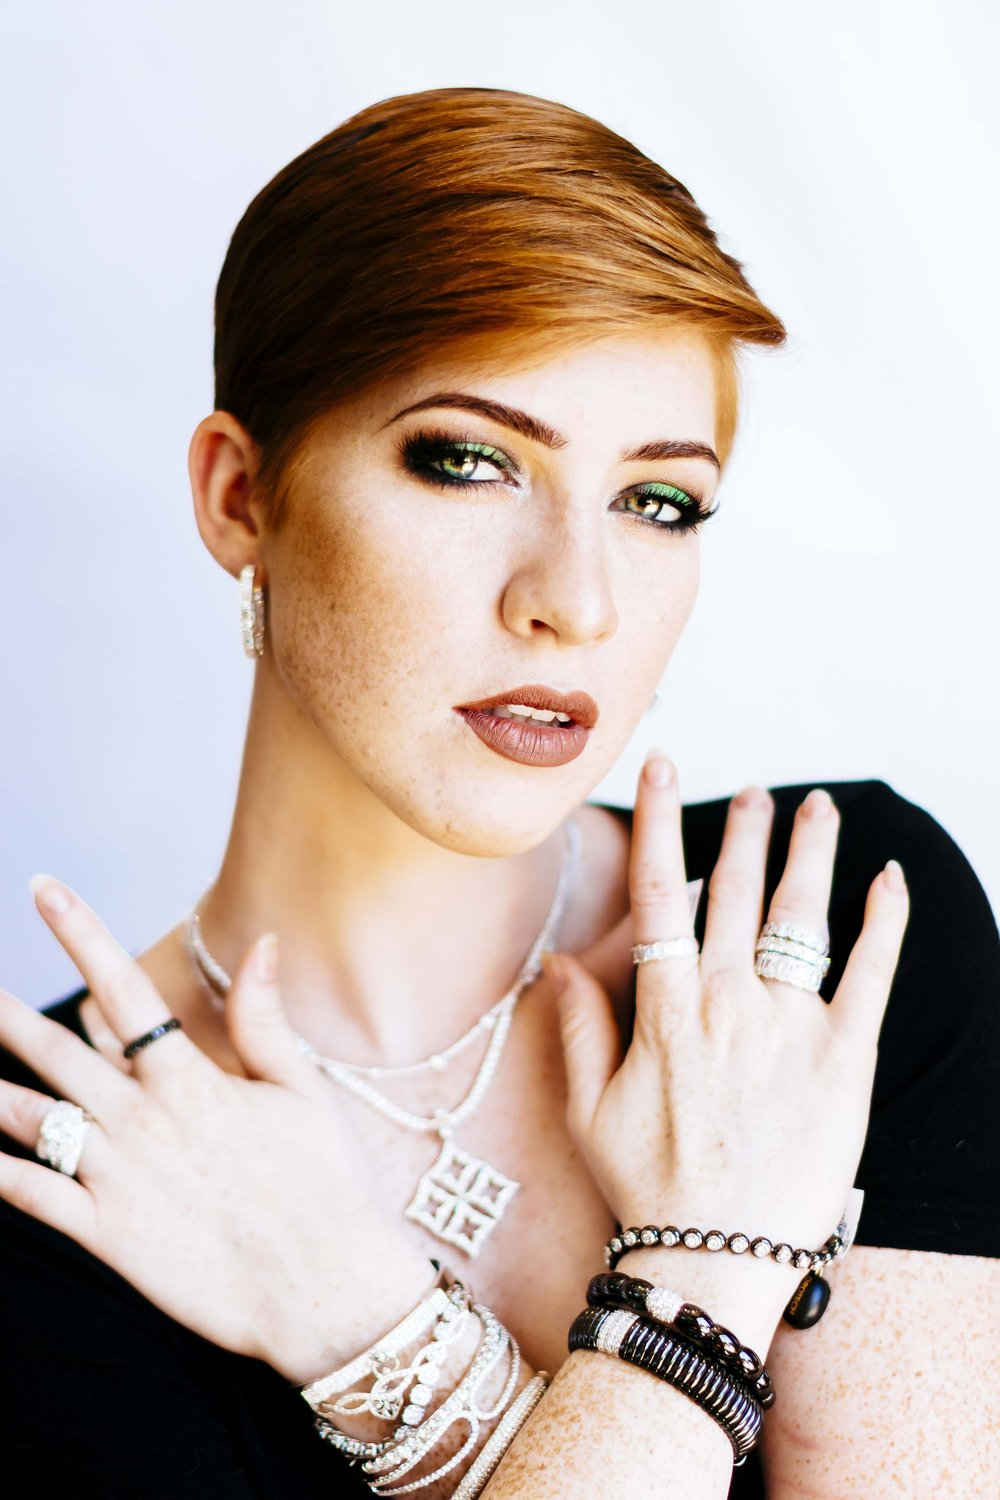 Model: Sommer Camp - Make-up provided by Lanae Crum - Jewelry provided by Randy Cooper's Fine Jewelry